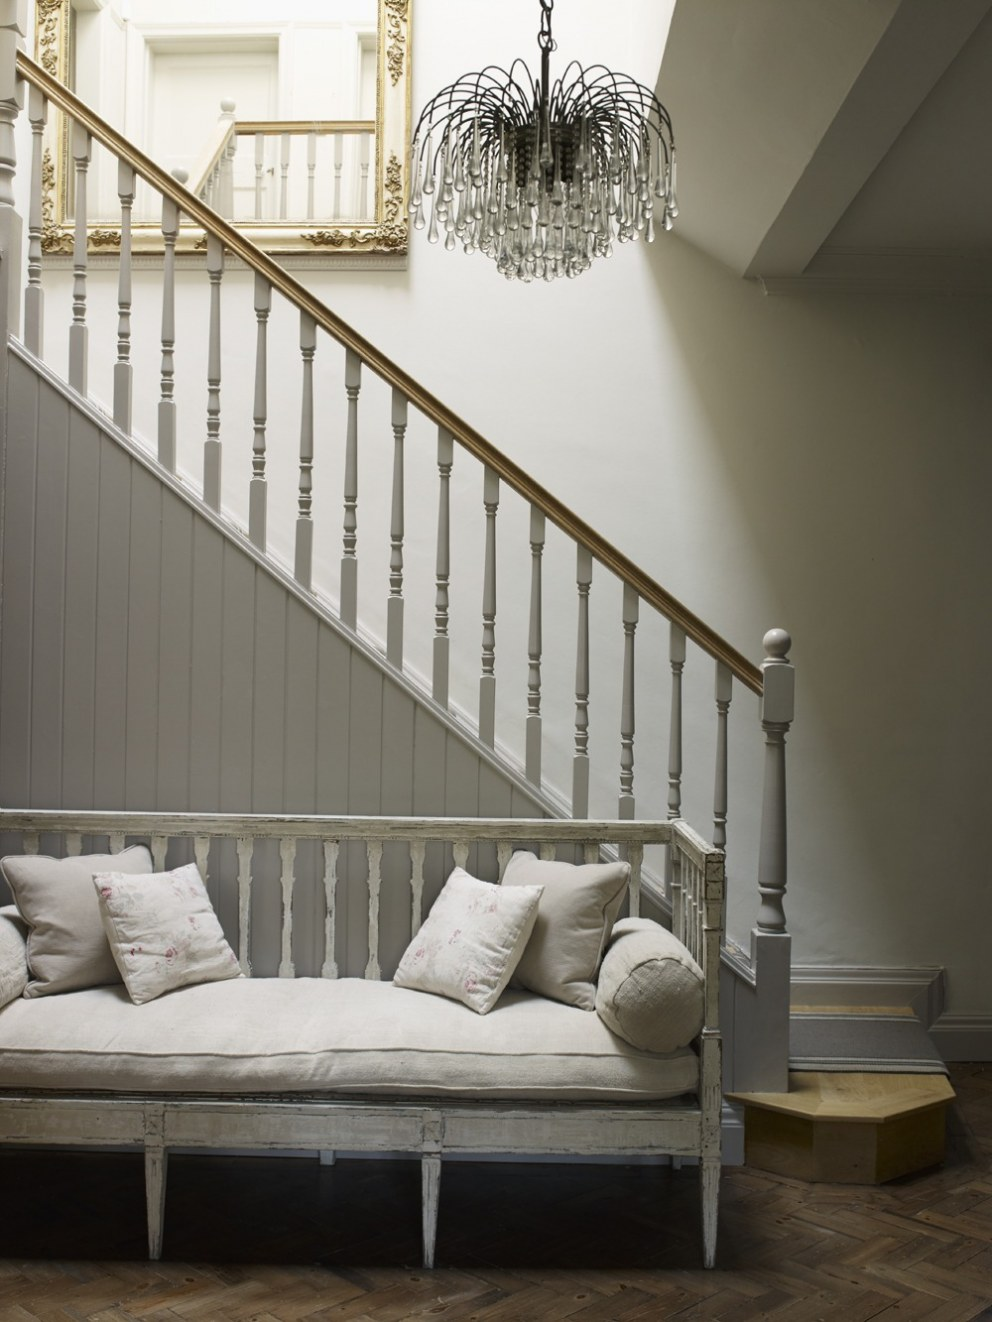 Arts and crafts home in north london hall interior for Interior designers north london